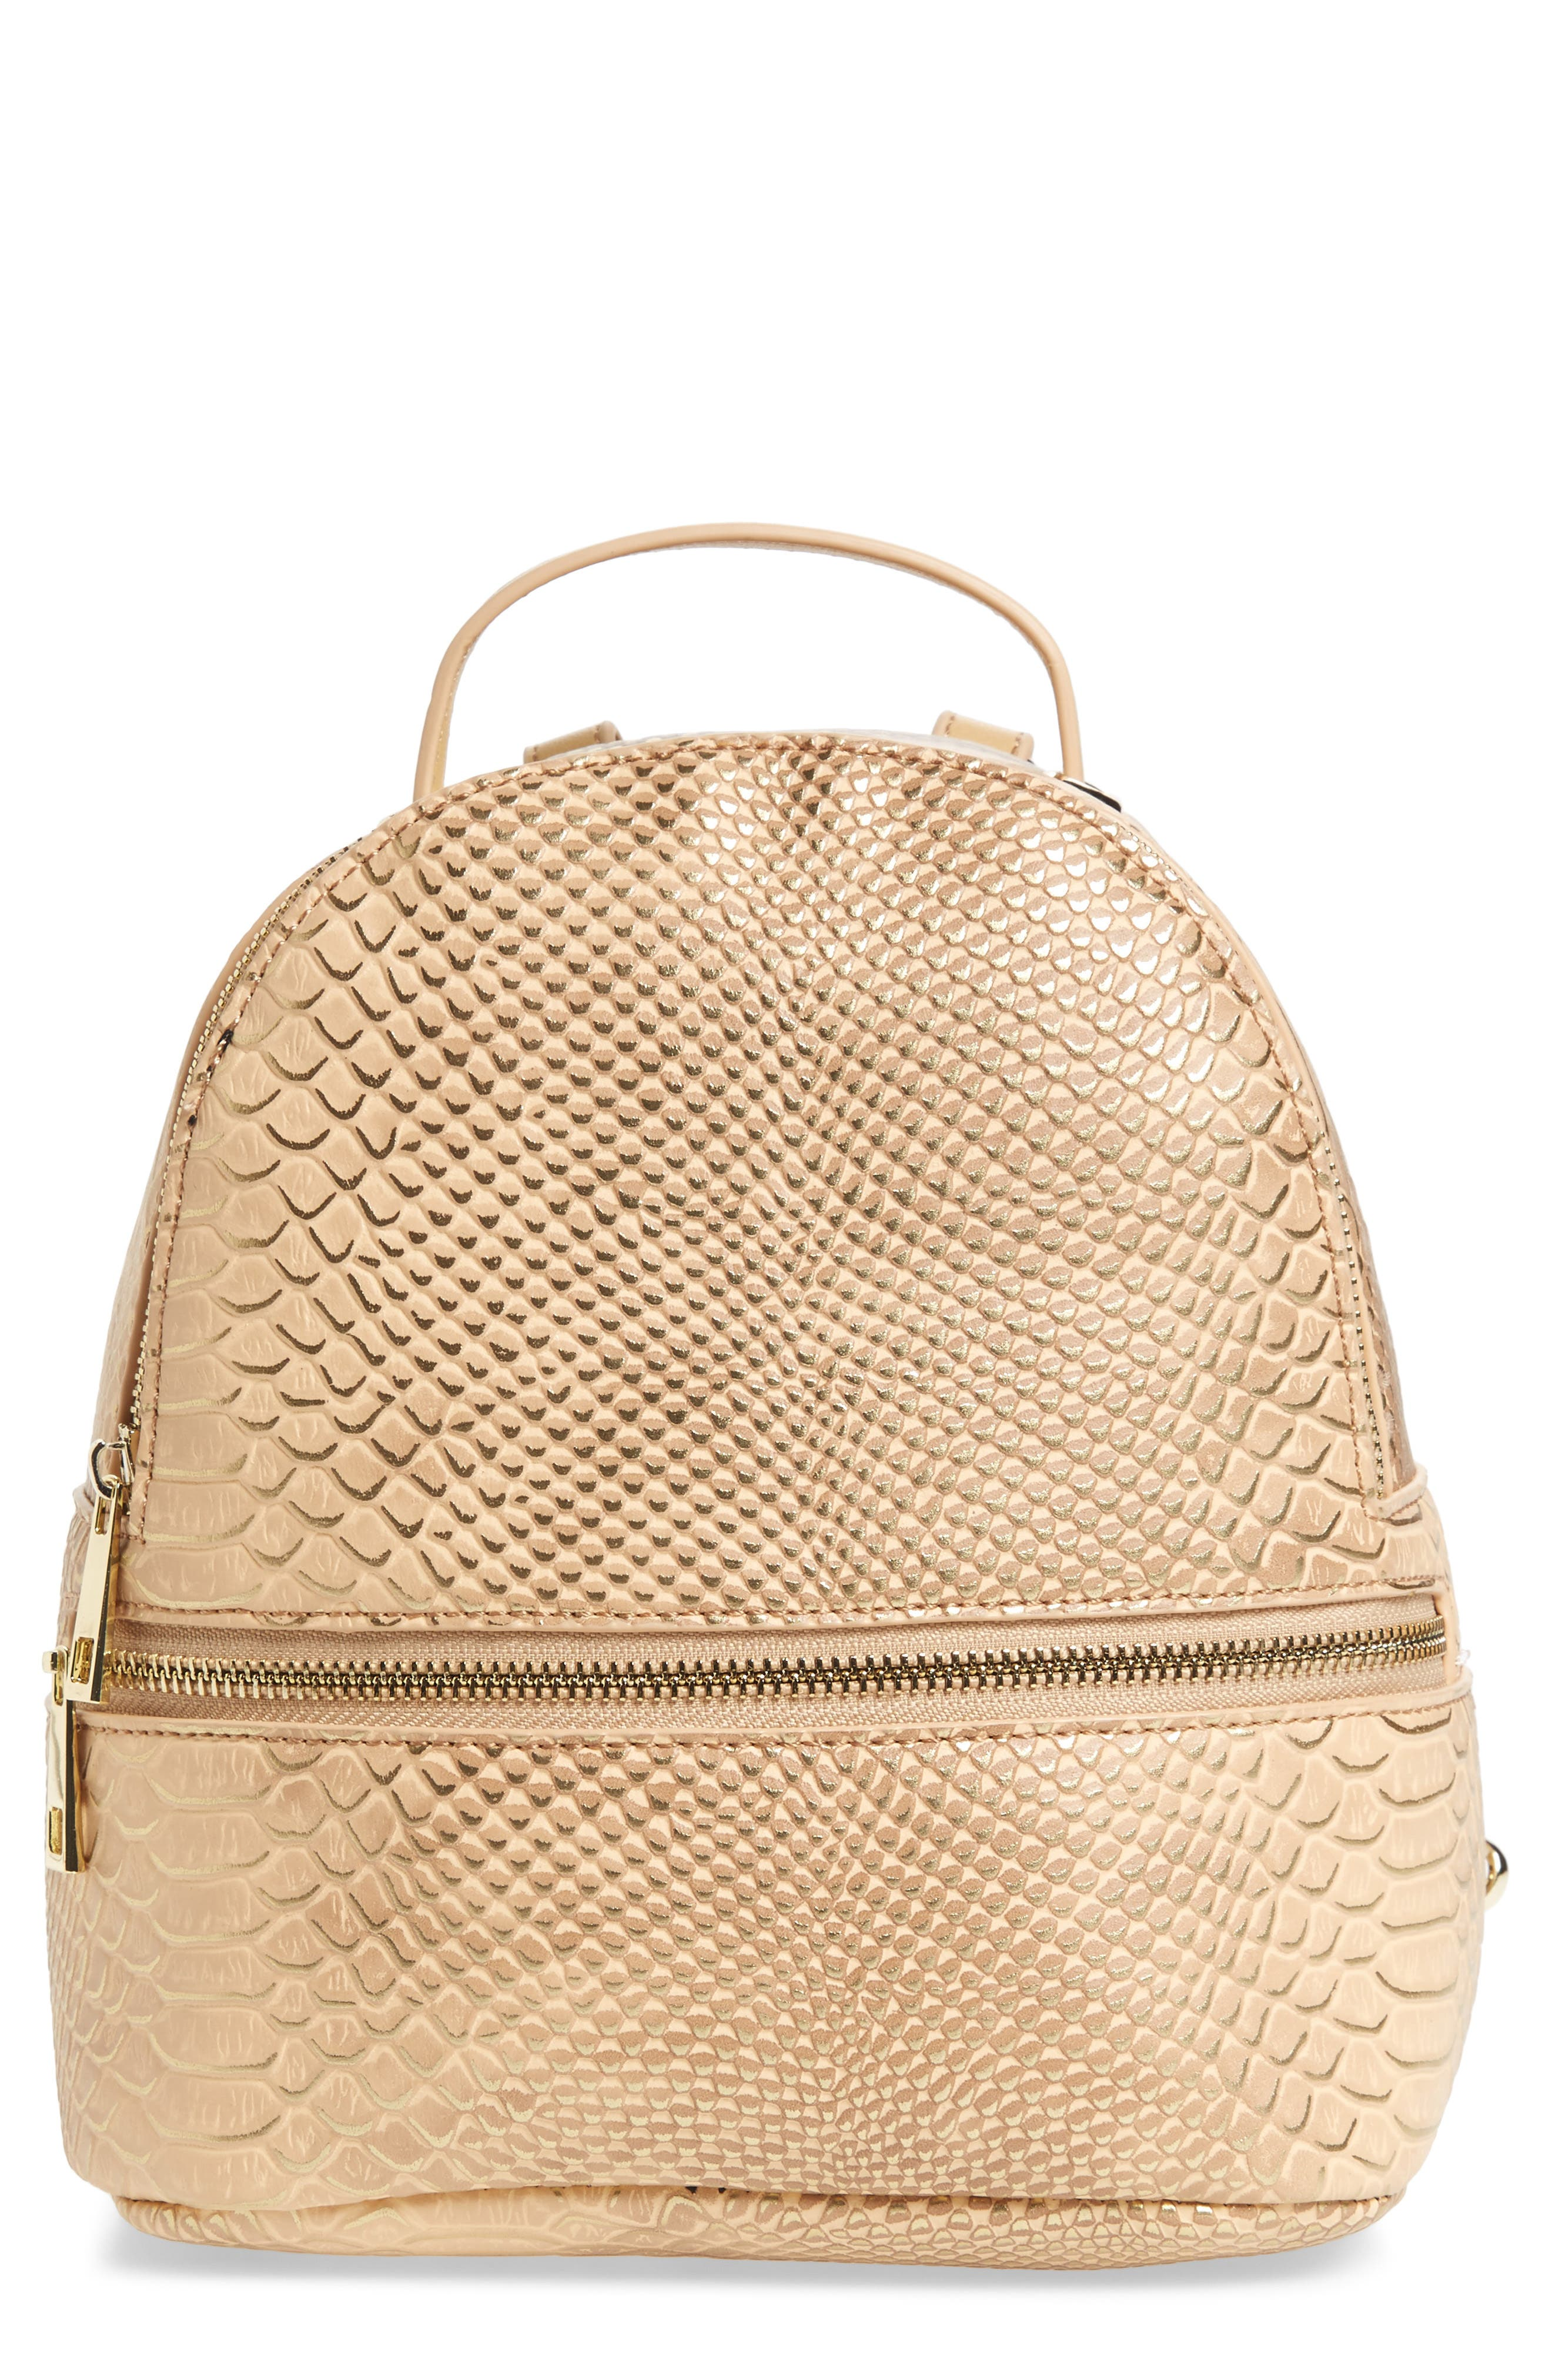 Colette Faux Leather Backpack,                         Main,                         color, Nude Snake